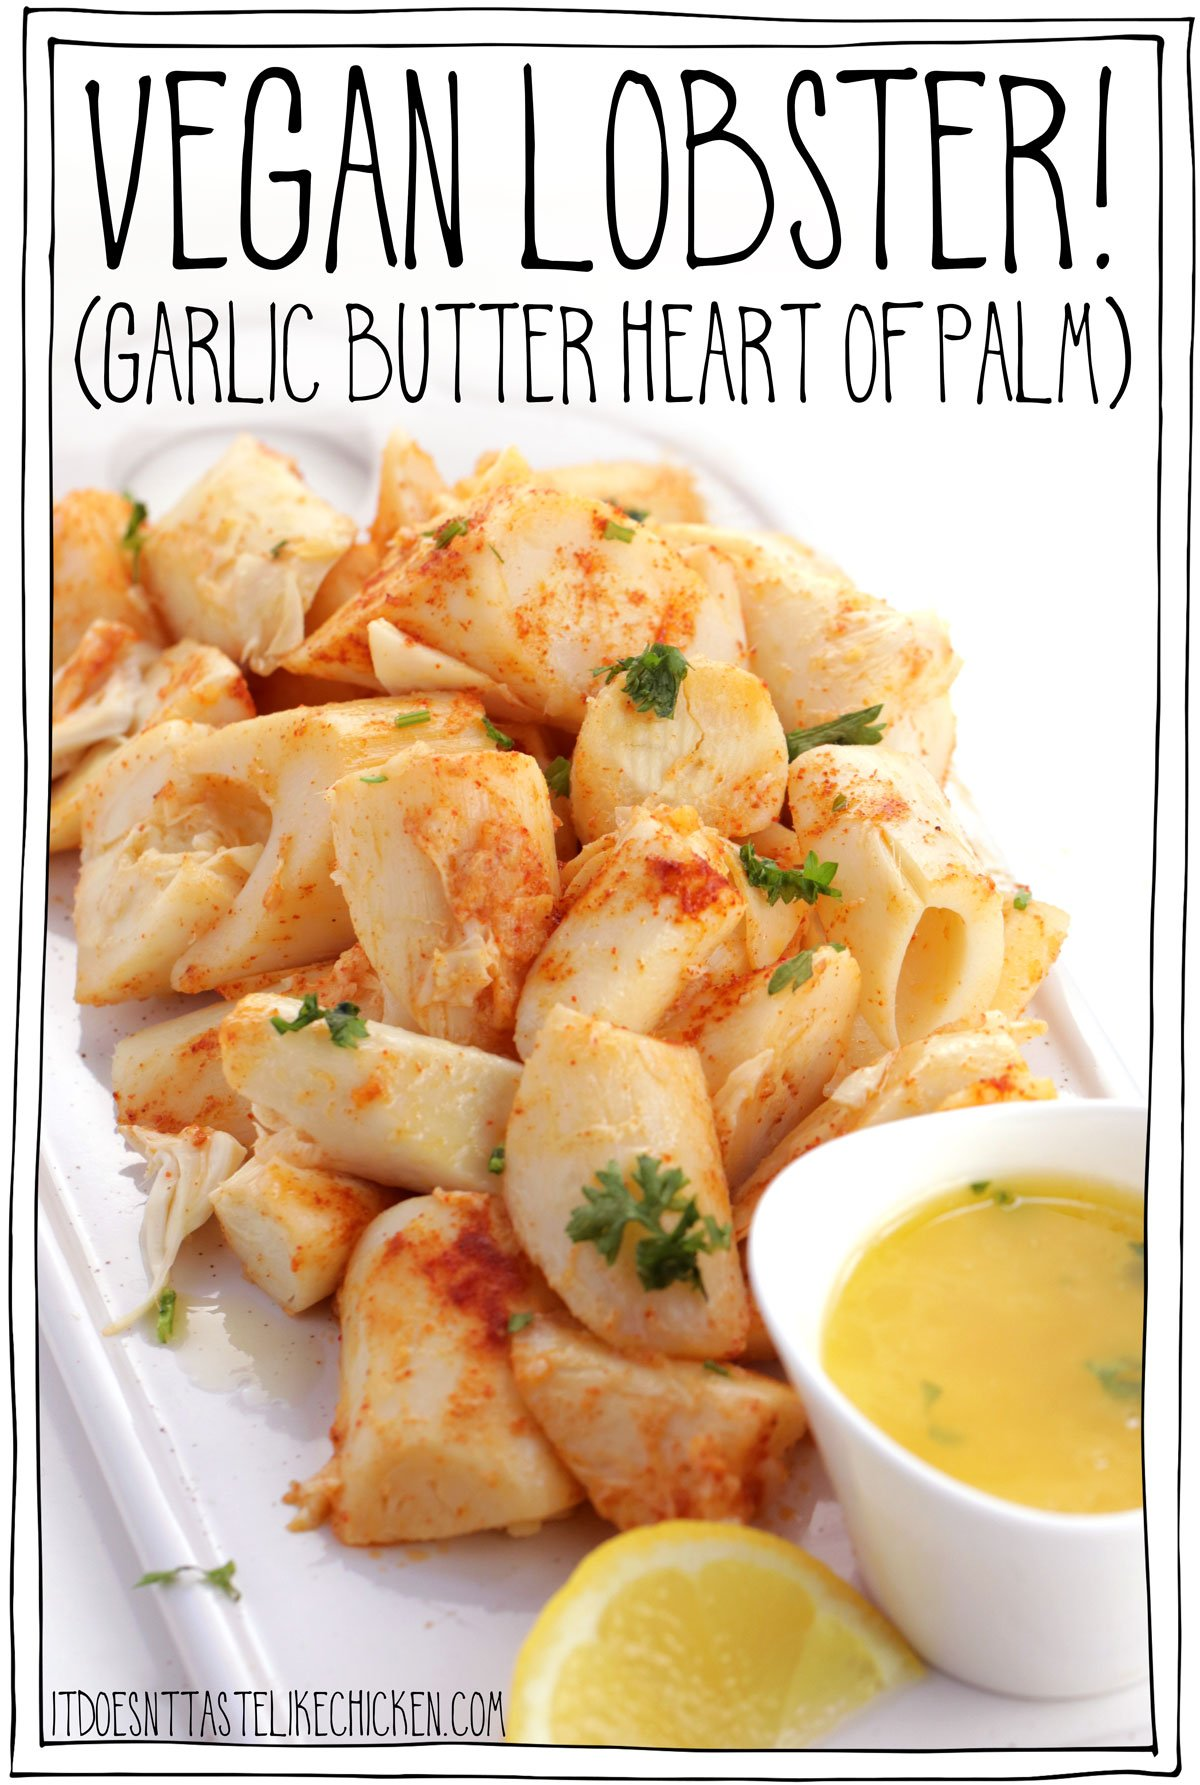 Vegan Lobster (Garlic Butter Heart of Palm) that is tender and served with a buttery garlic dip. Just 7 ingredients and takes 10 min to make.